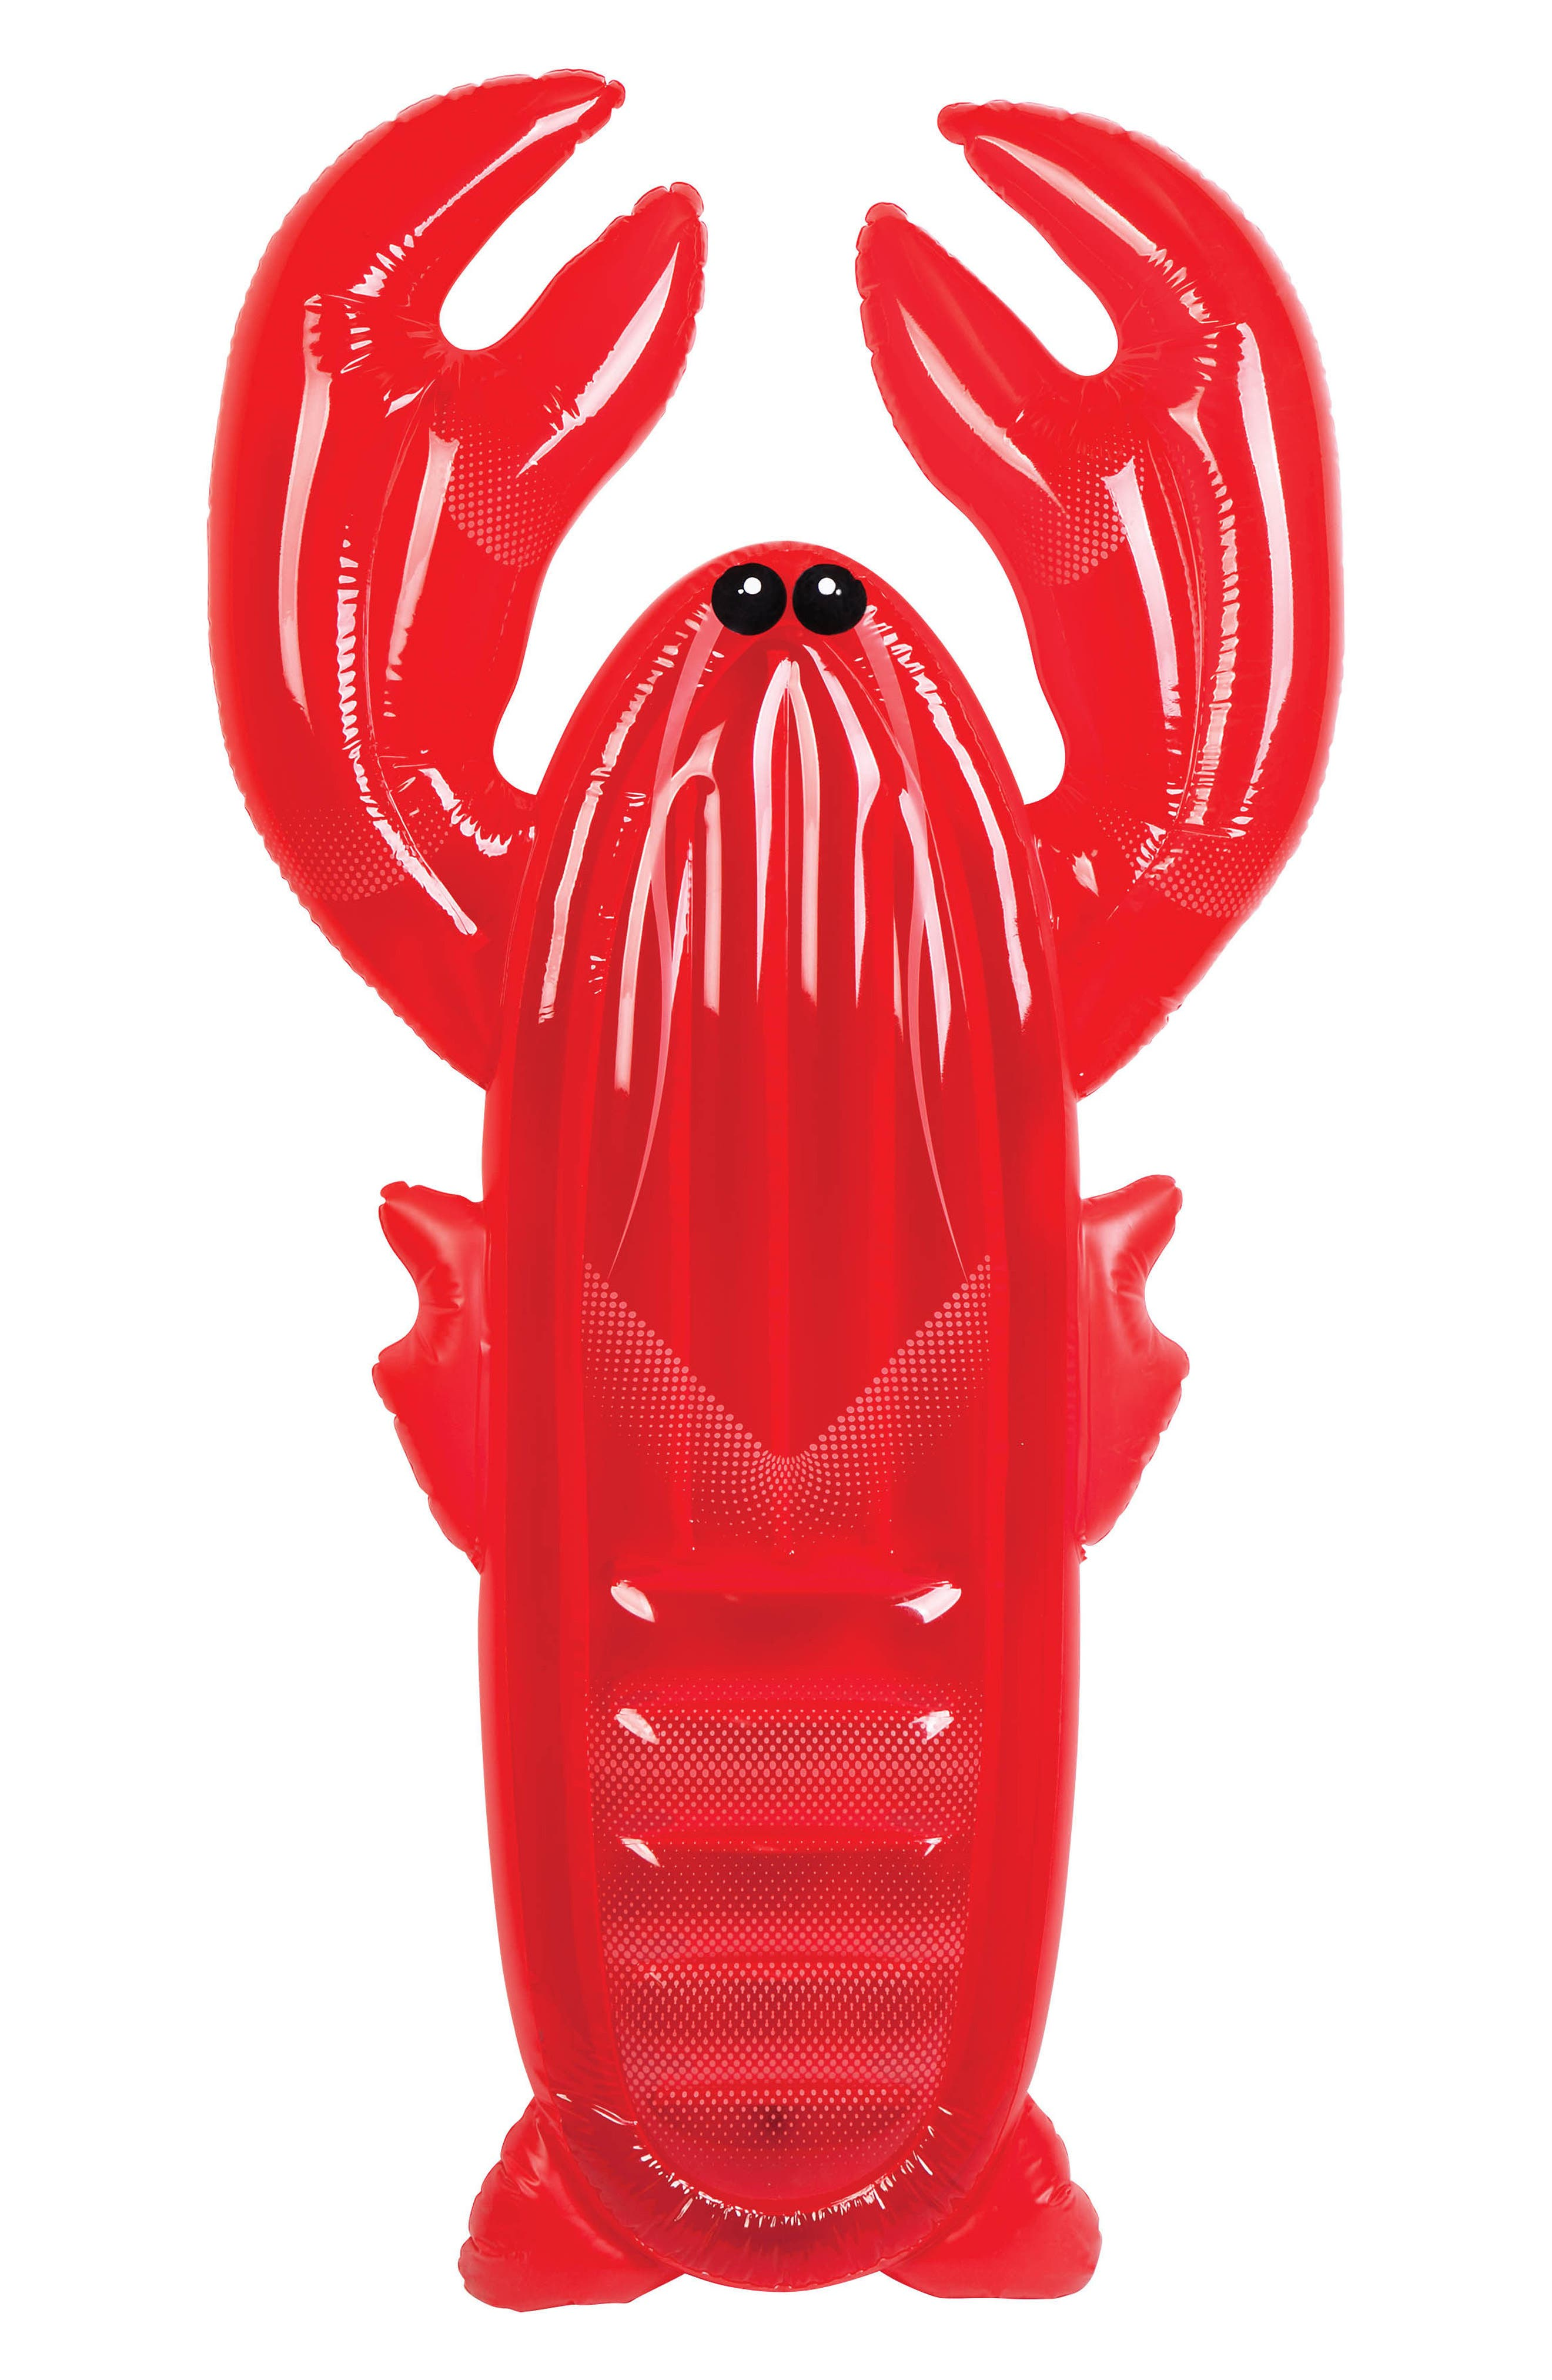 Alternate Image 1 Selected - Sunnylife Inflatable Lobster Pool Float